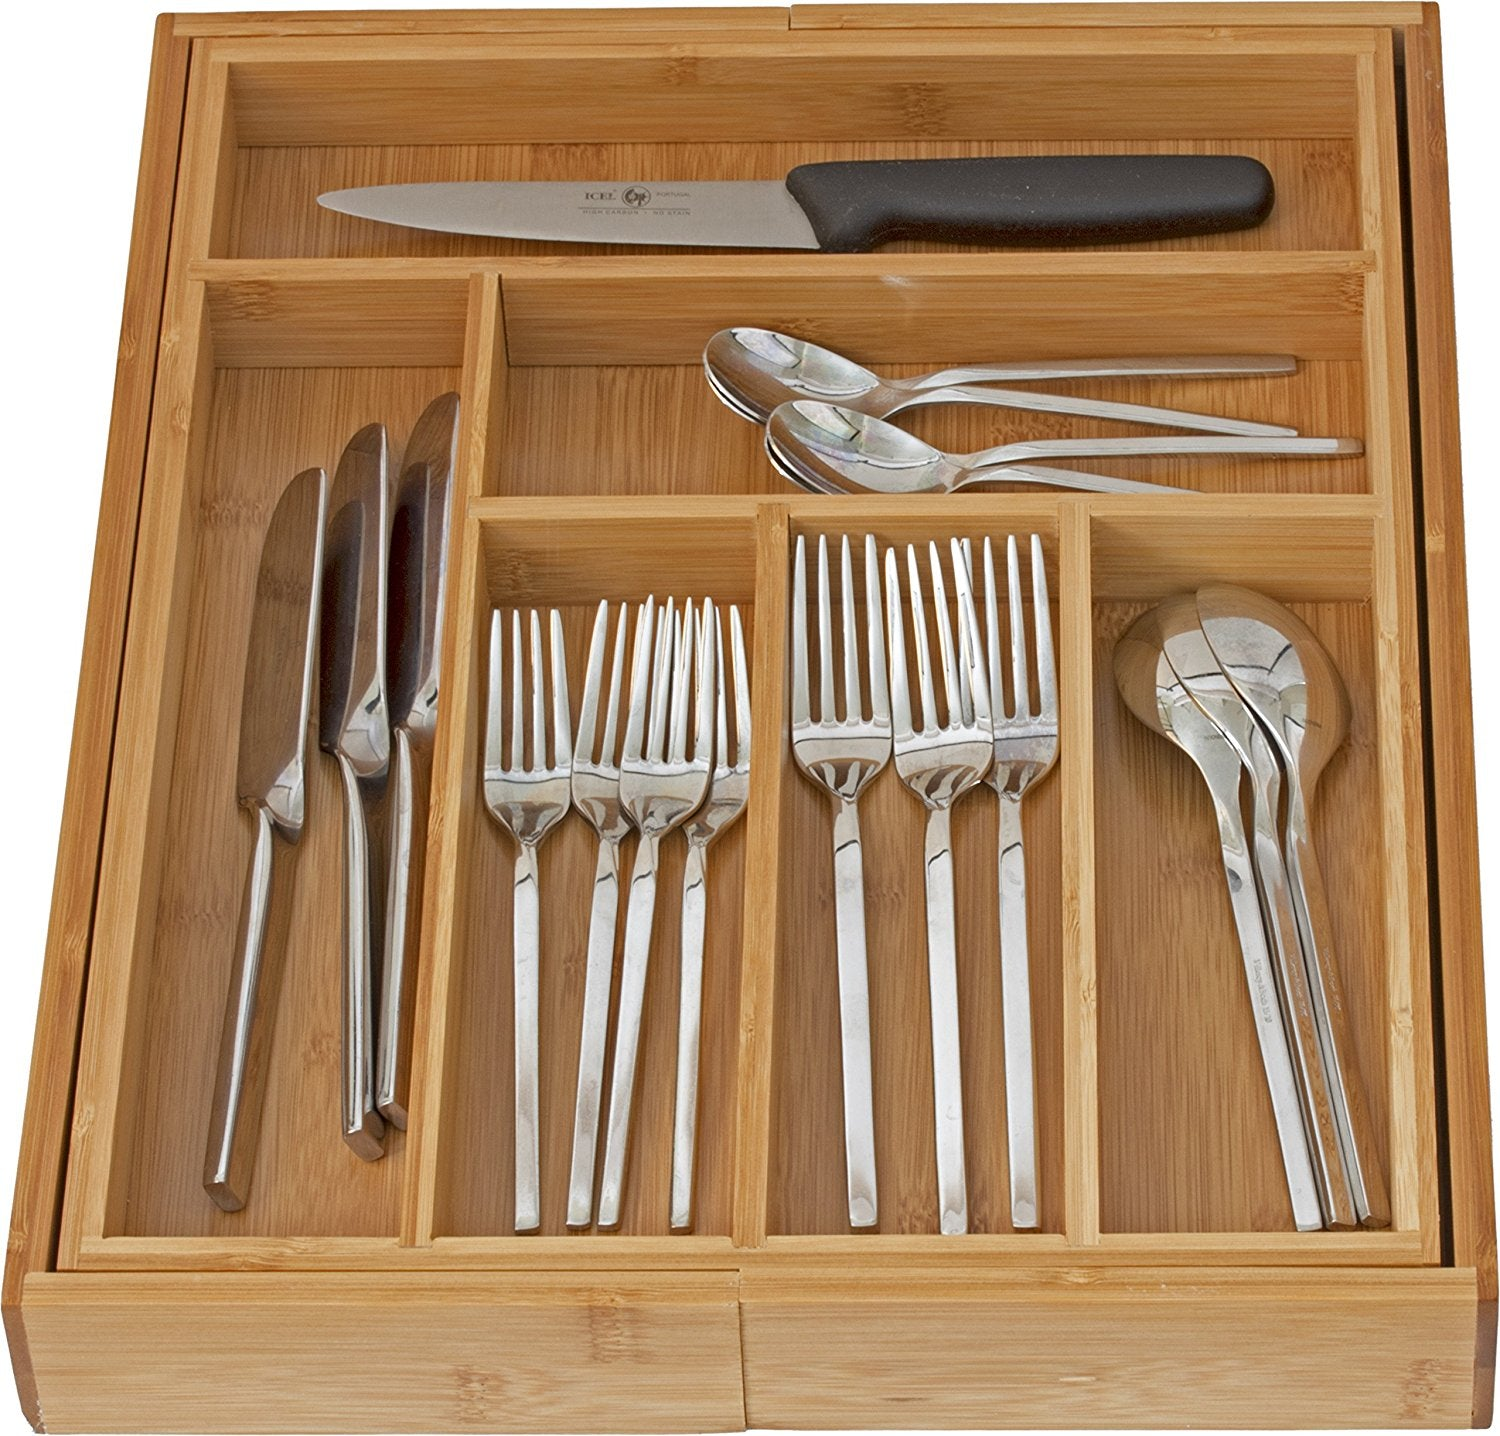 Home-it Expandable Cutlery Drawer Organizer, utensil organizer Flatware  Drawer Dividers, Kitchen Drawer Organizer Nice Cutlery Holder